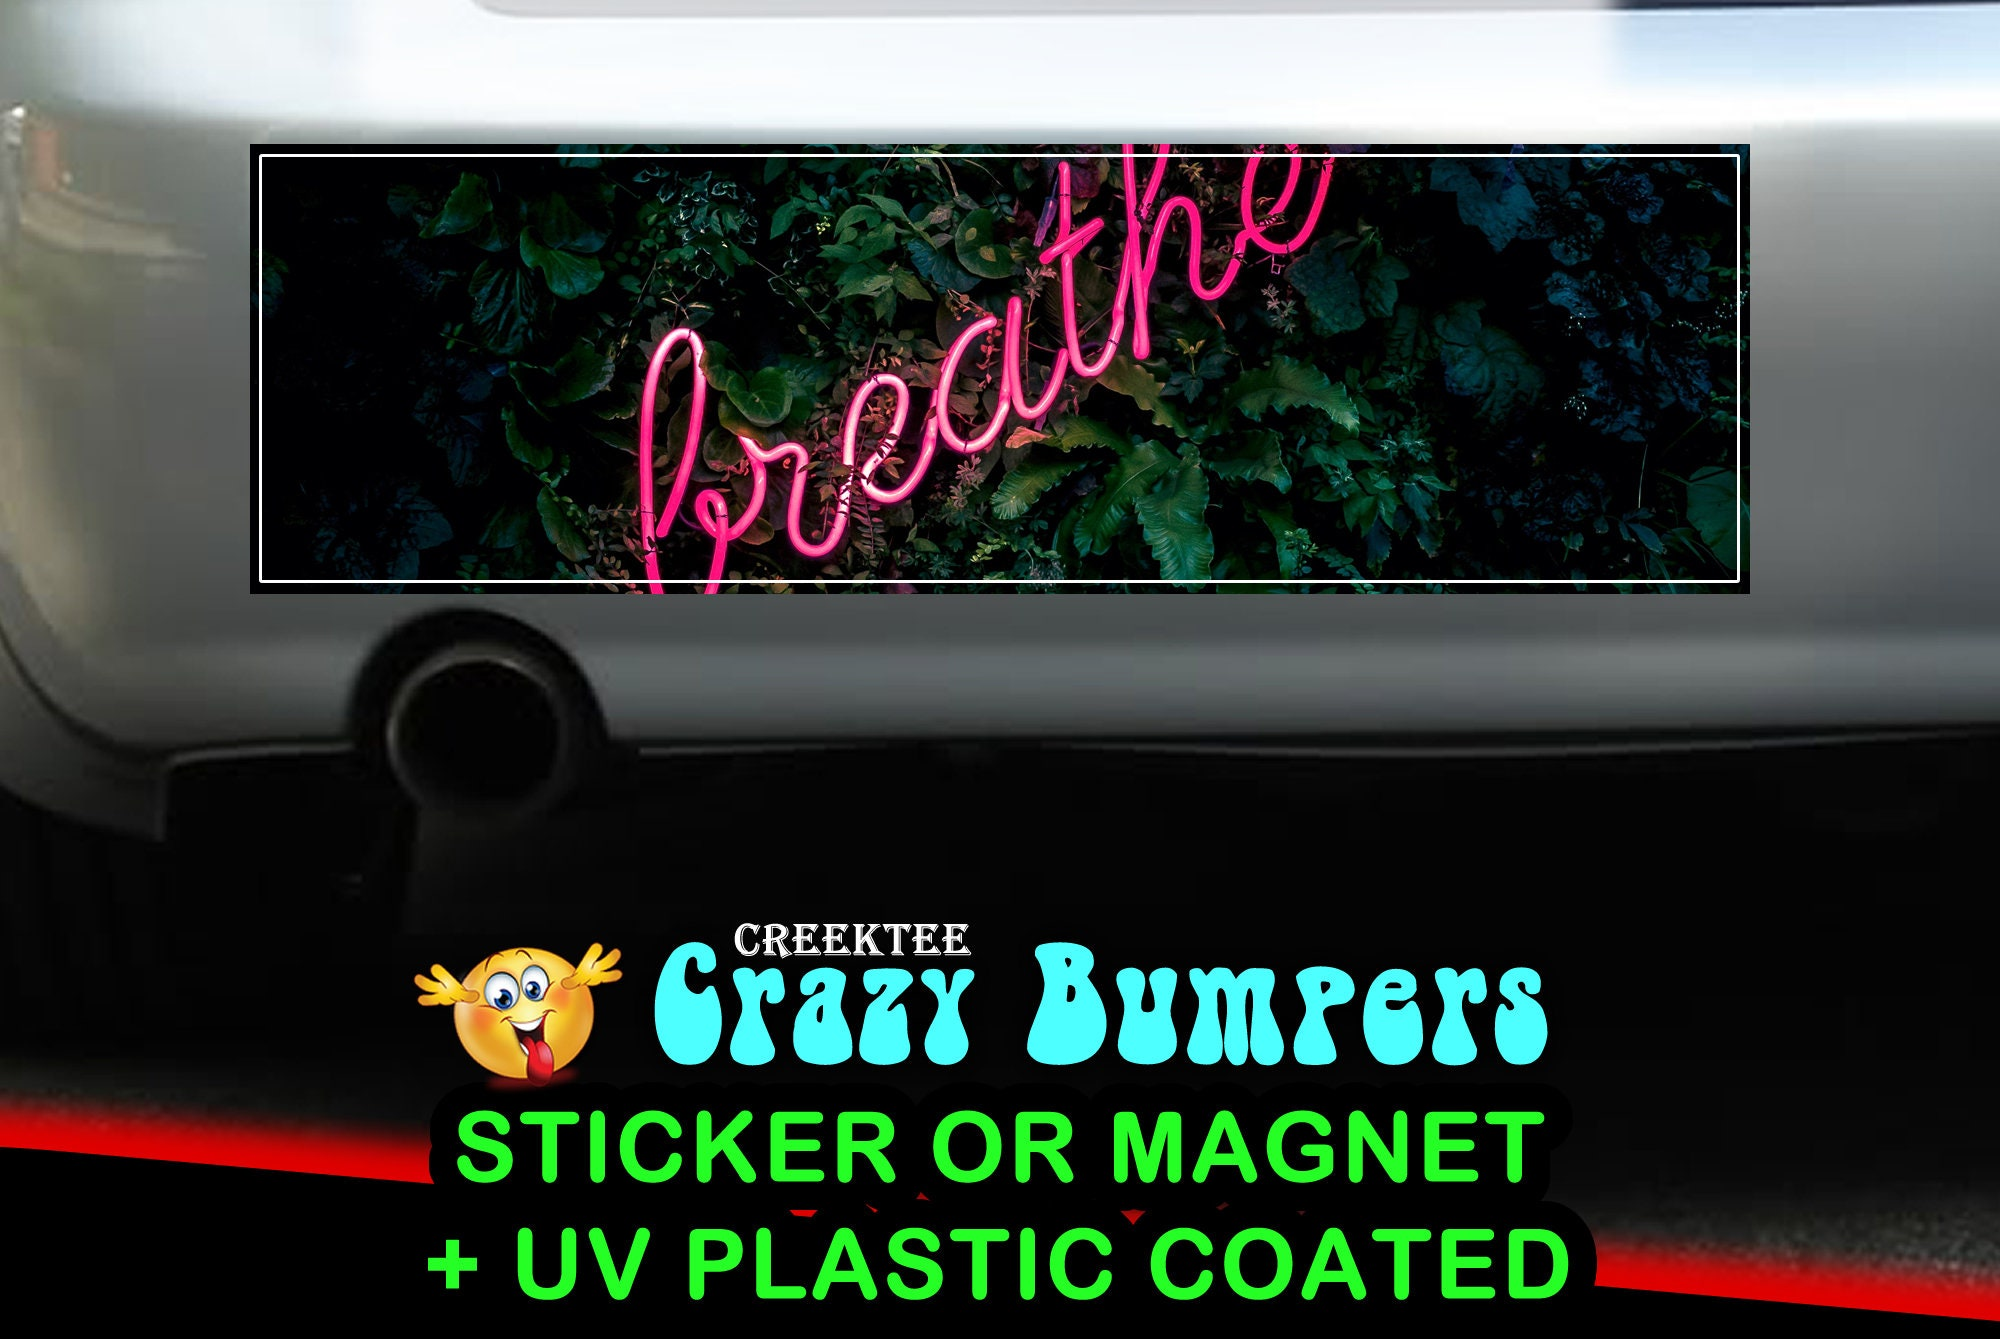 CAD$9.74 - Breathe 10 x 3 Bumper Sticker or Magnet - Custom changes and orders welcomed!